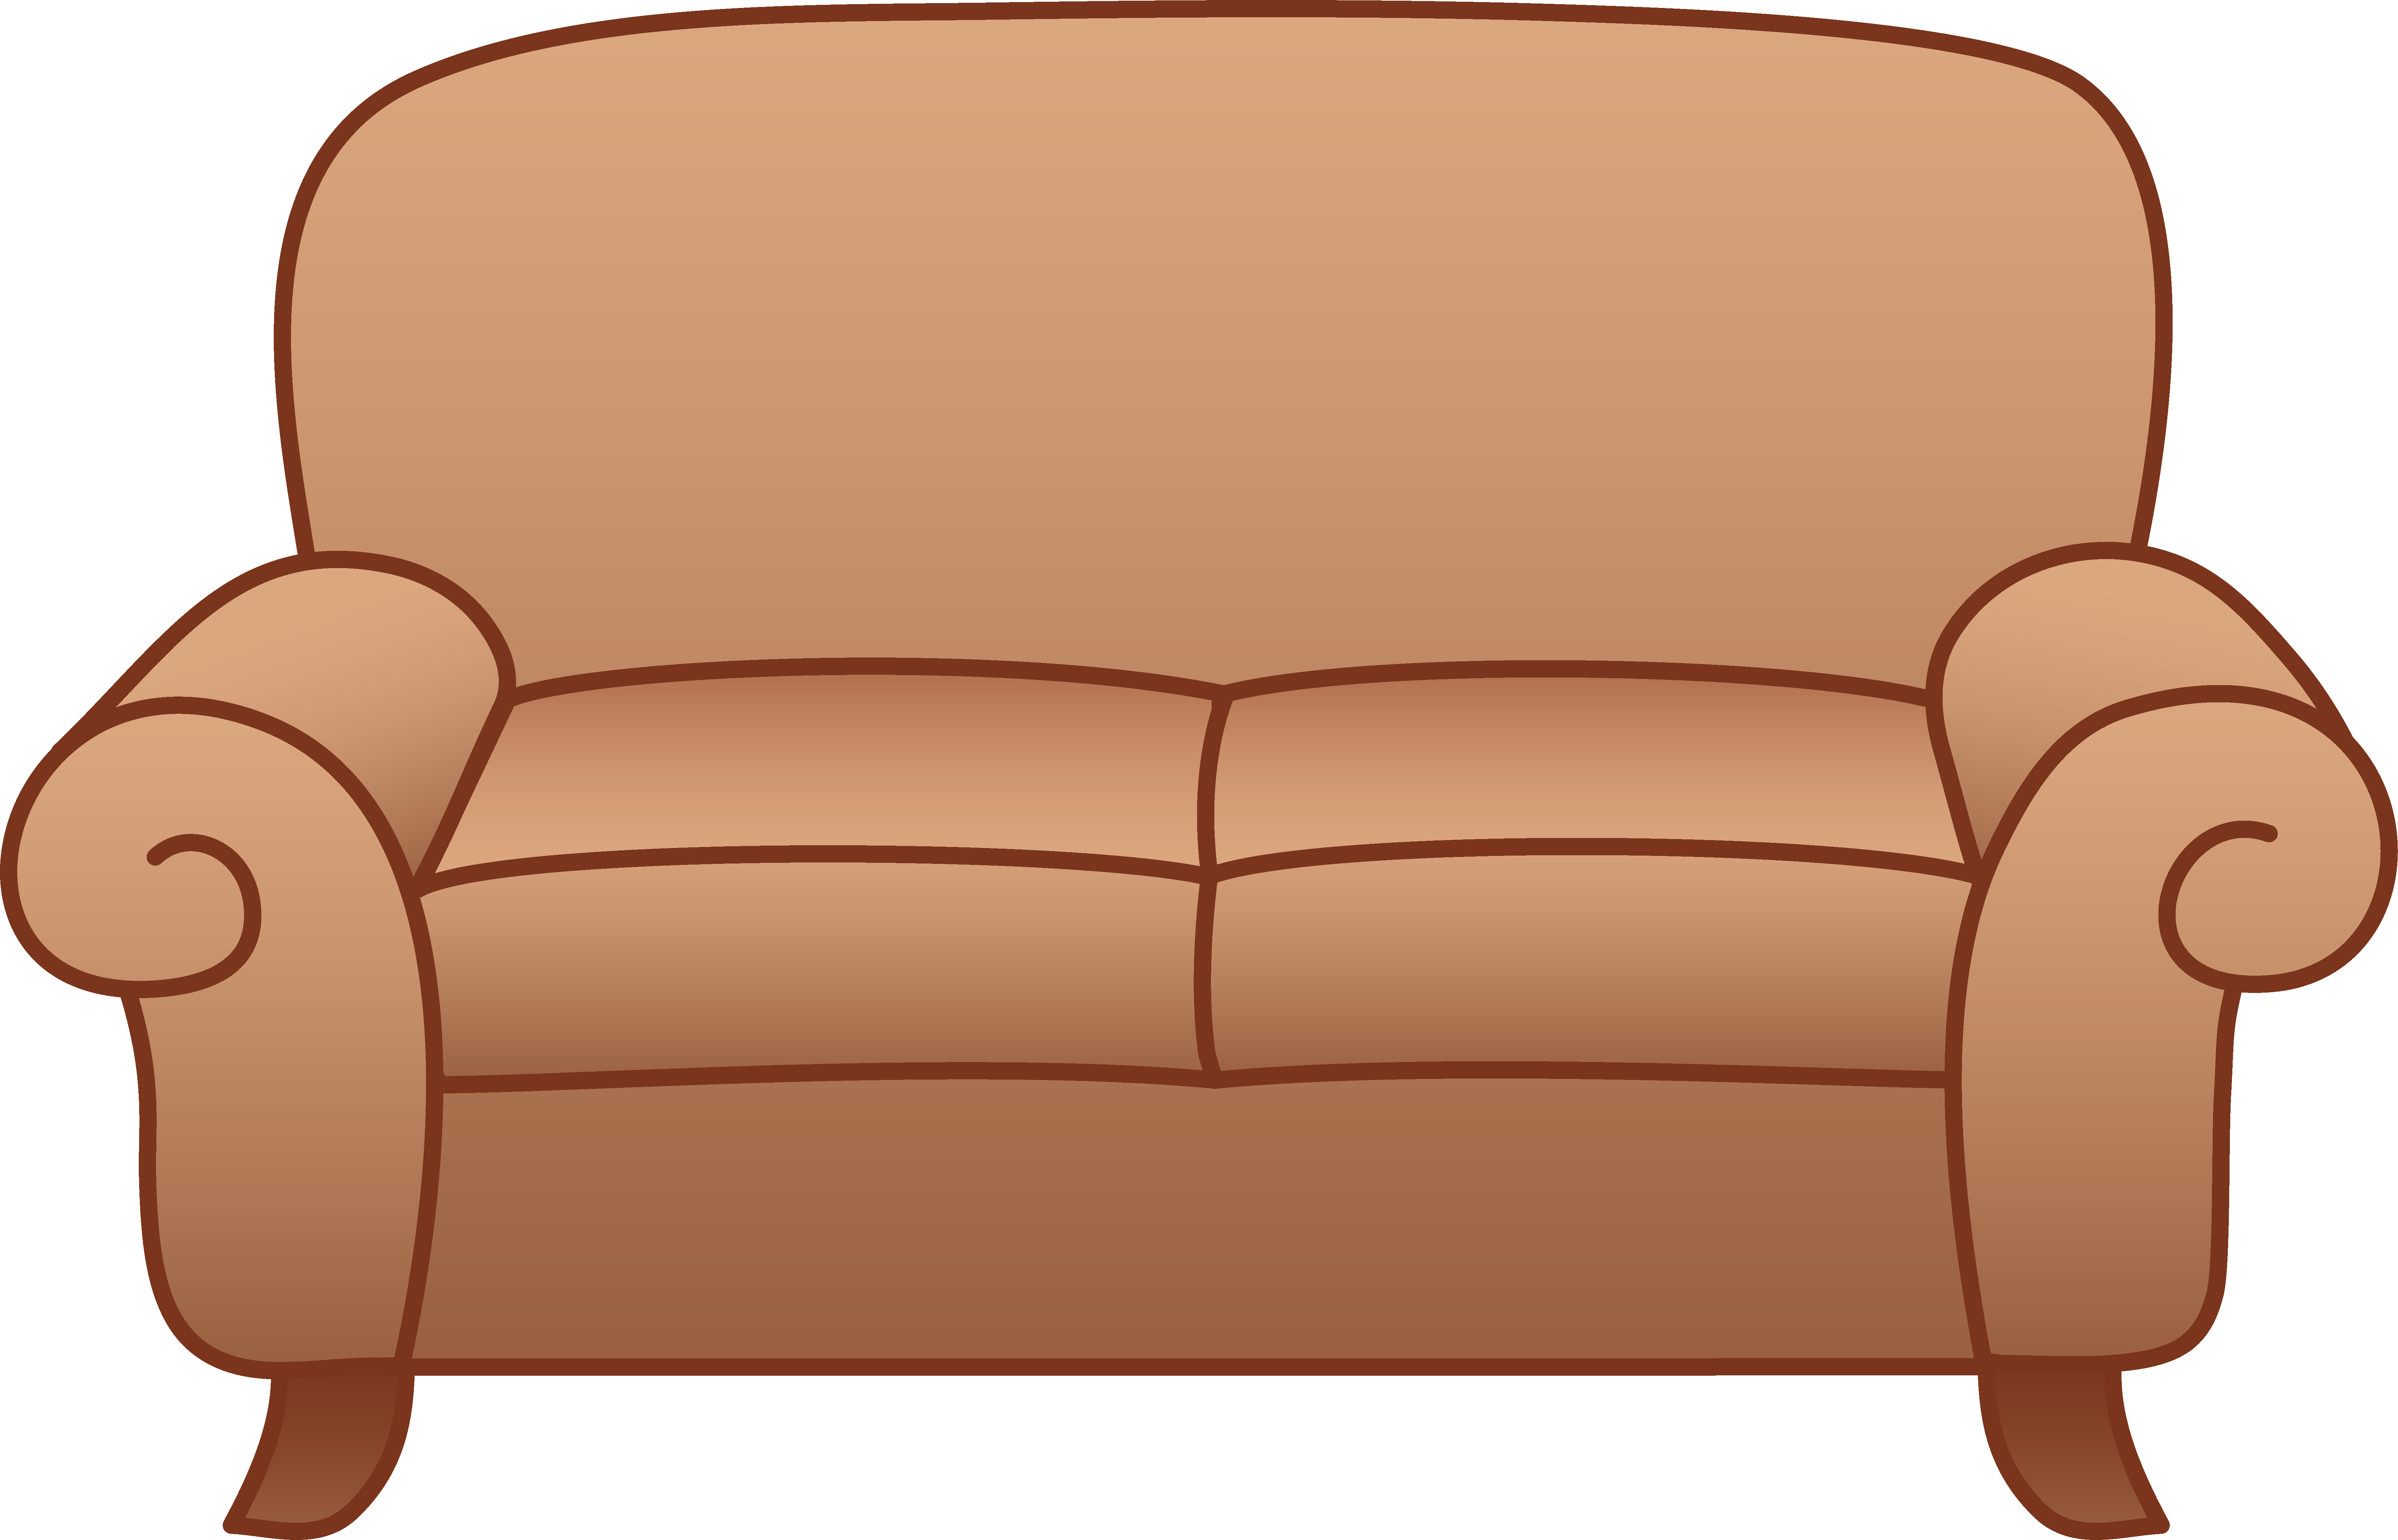 6947x4462 Furniture Clipart Sofa